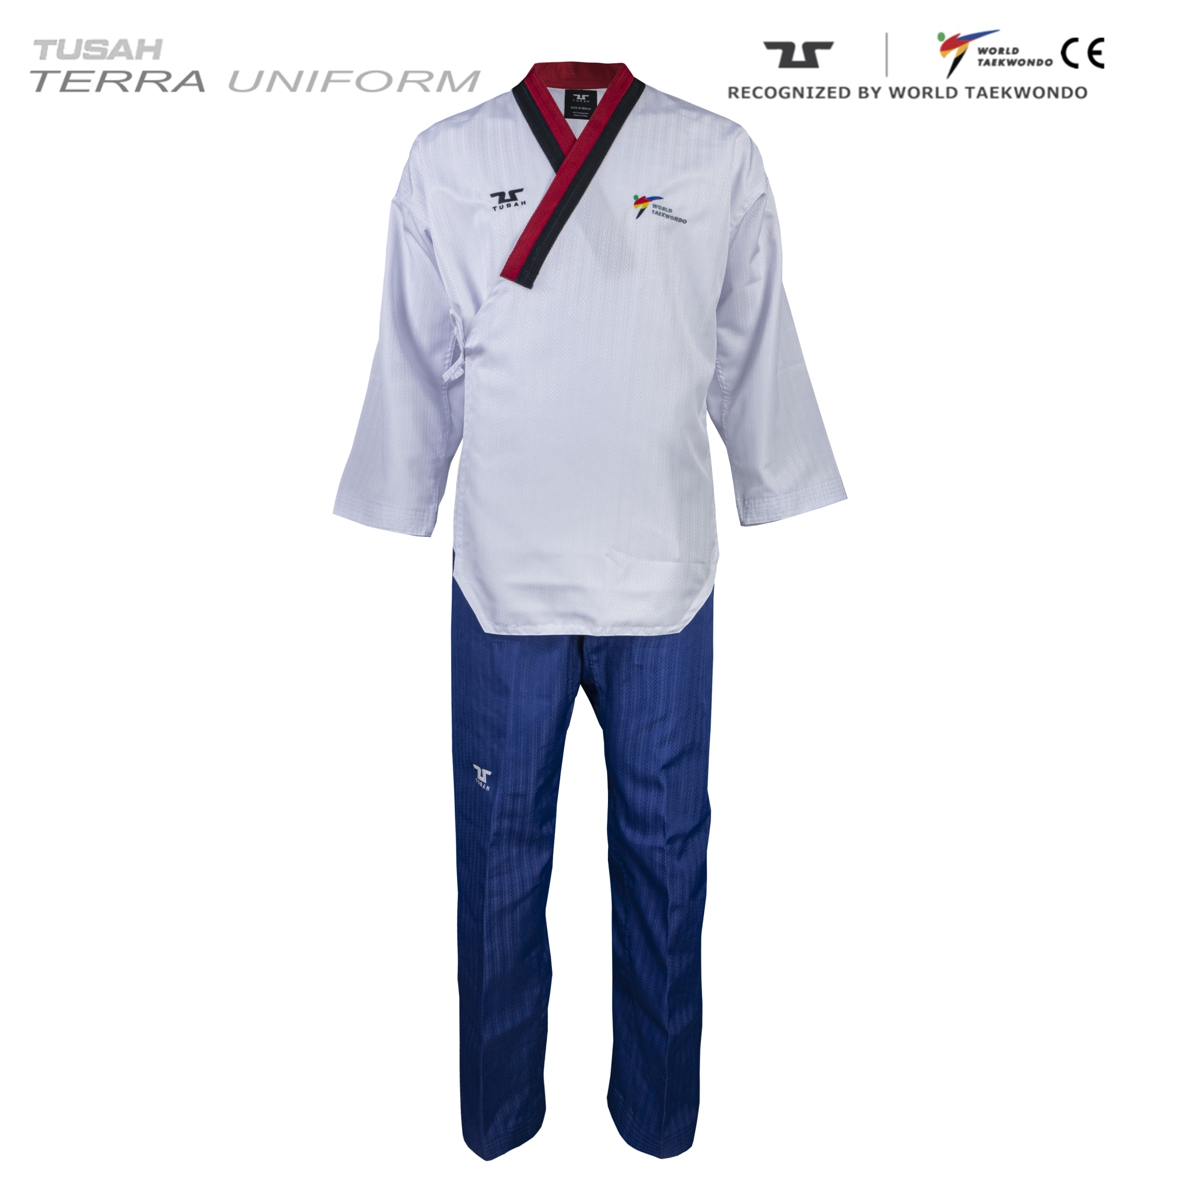 Terra Male Poom Uniform Tuash Taekwondo Poomsae Range